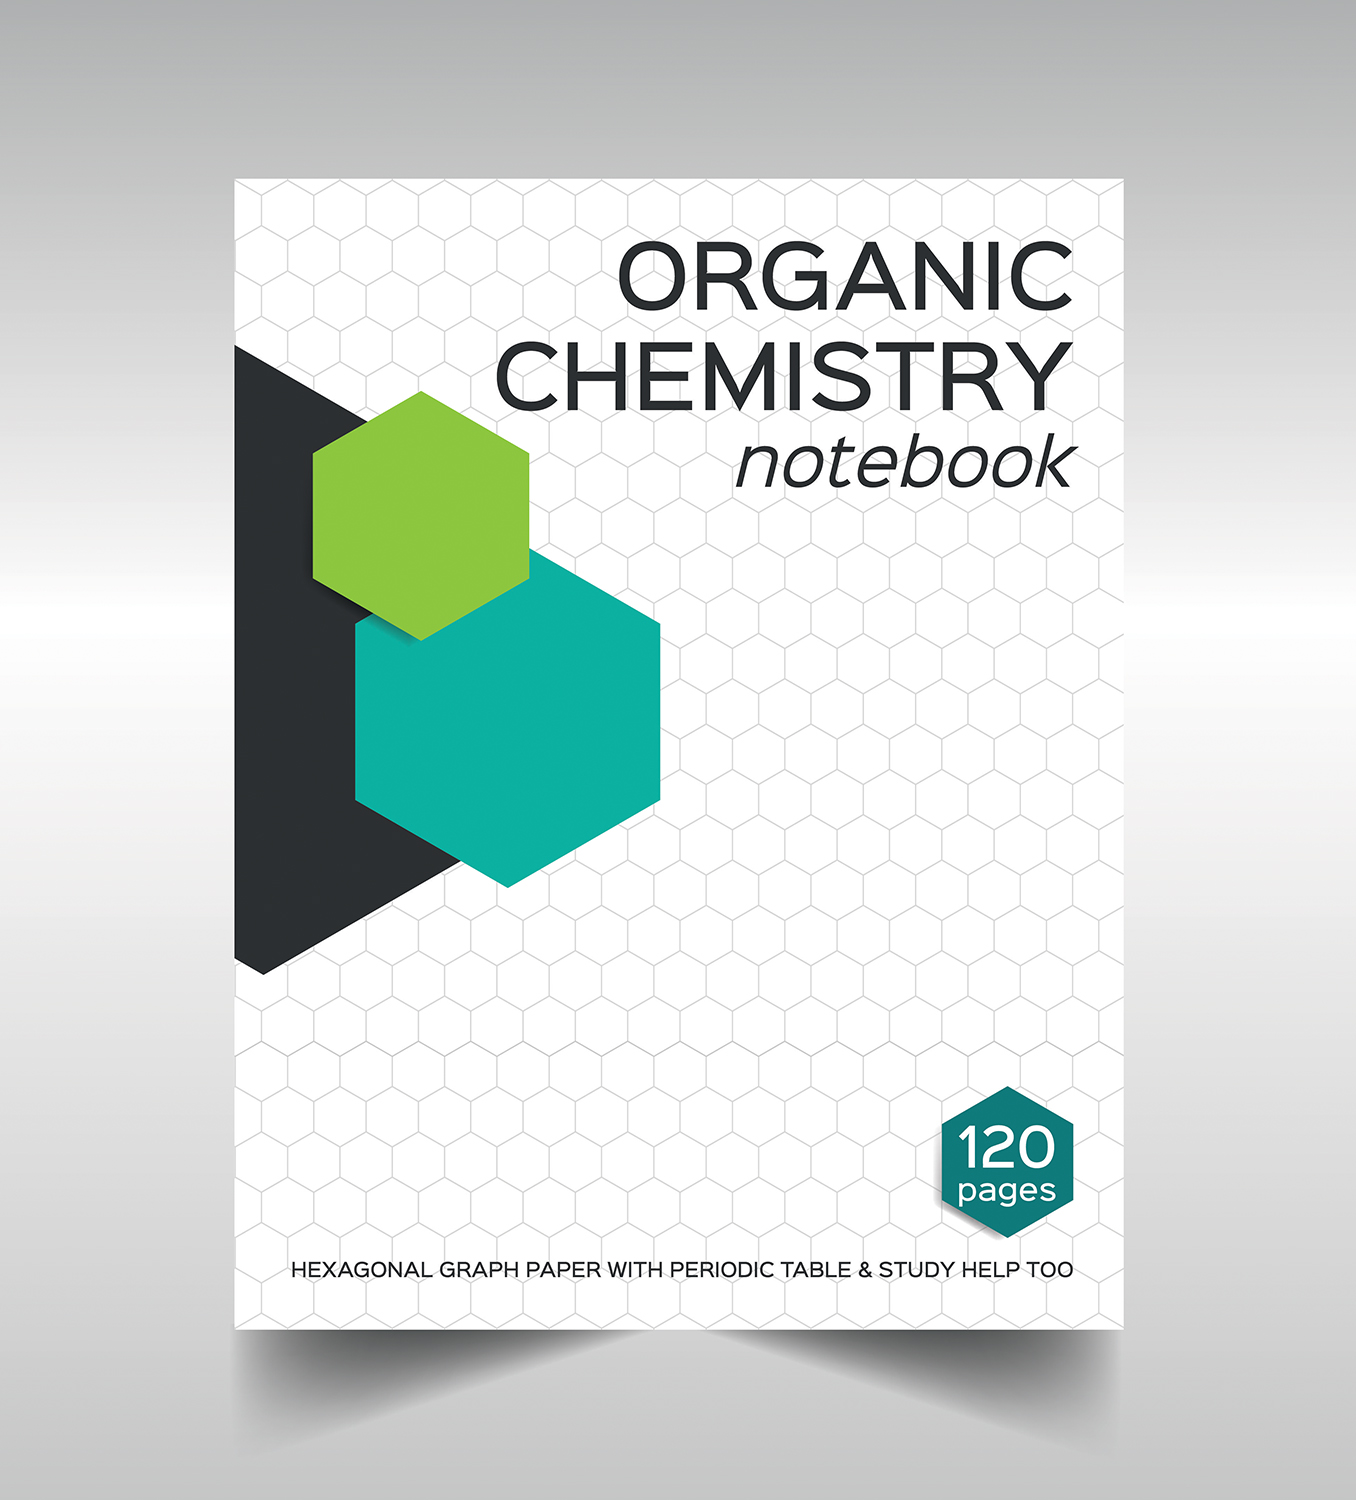 Book Cover Design By Pinky For Aceorganicchem.com | Design: #16464623